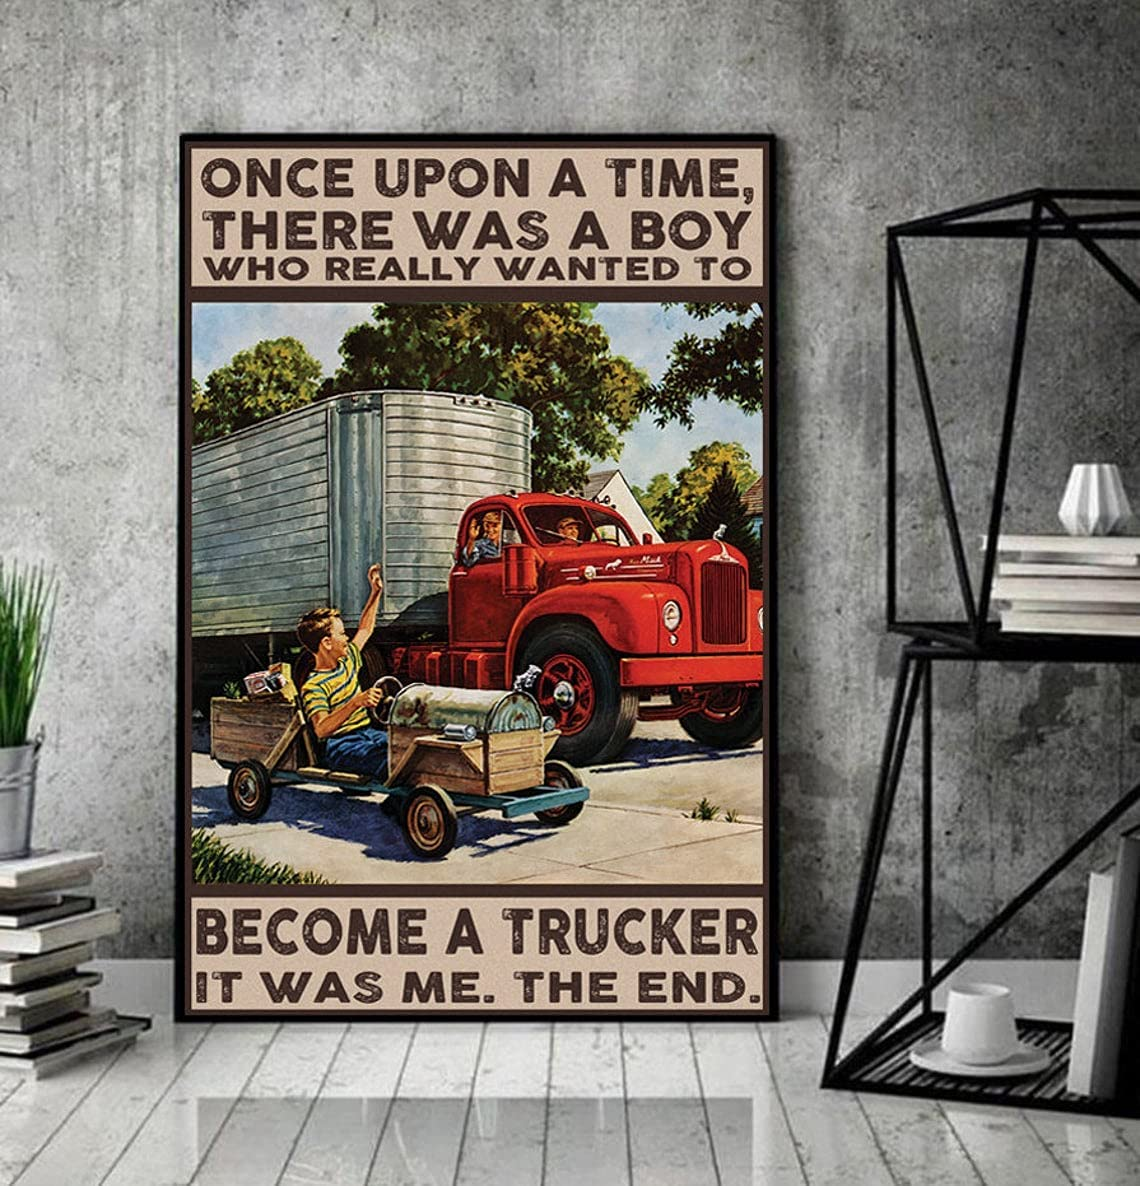 Max 47% OFF Once Upon a Time Columbus Mall There was A Who Boy Become Wanted to T Really